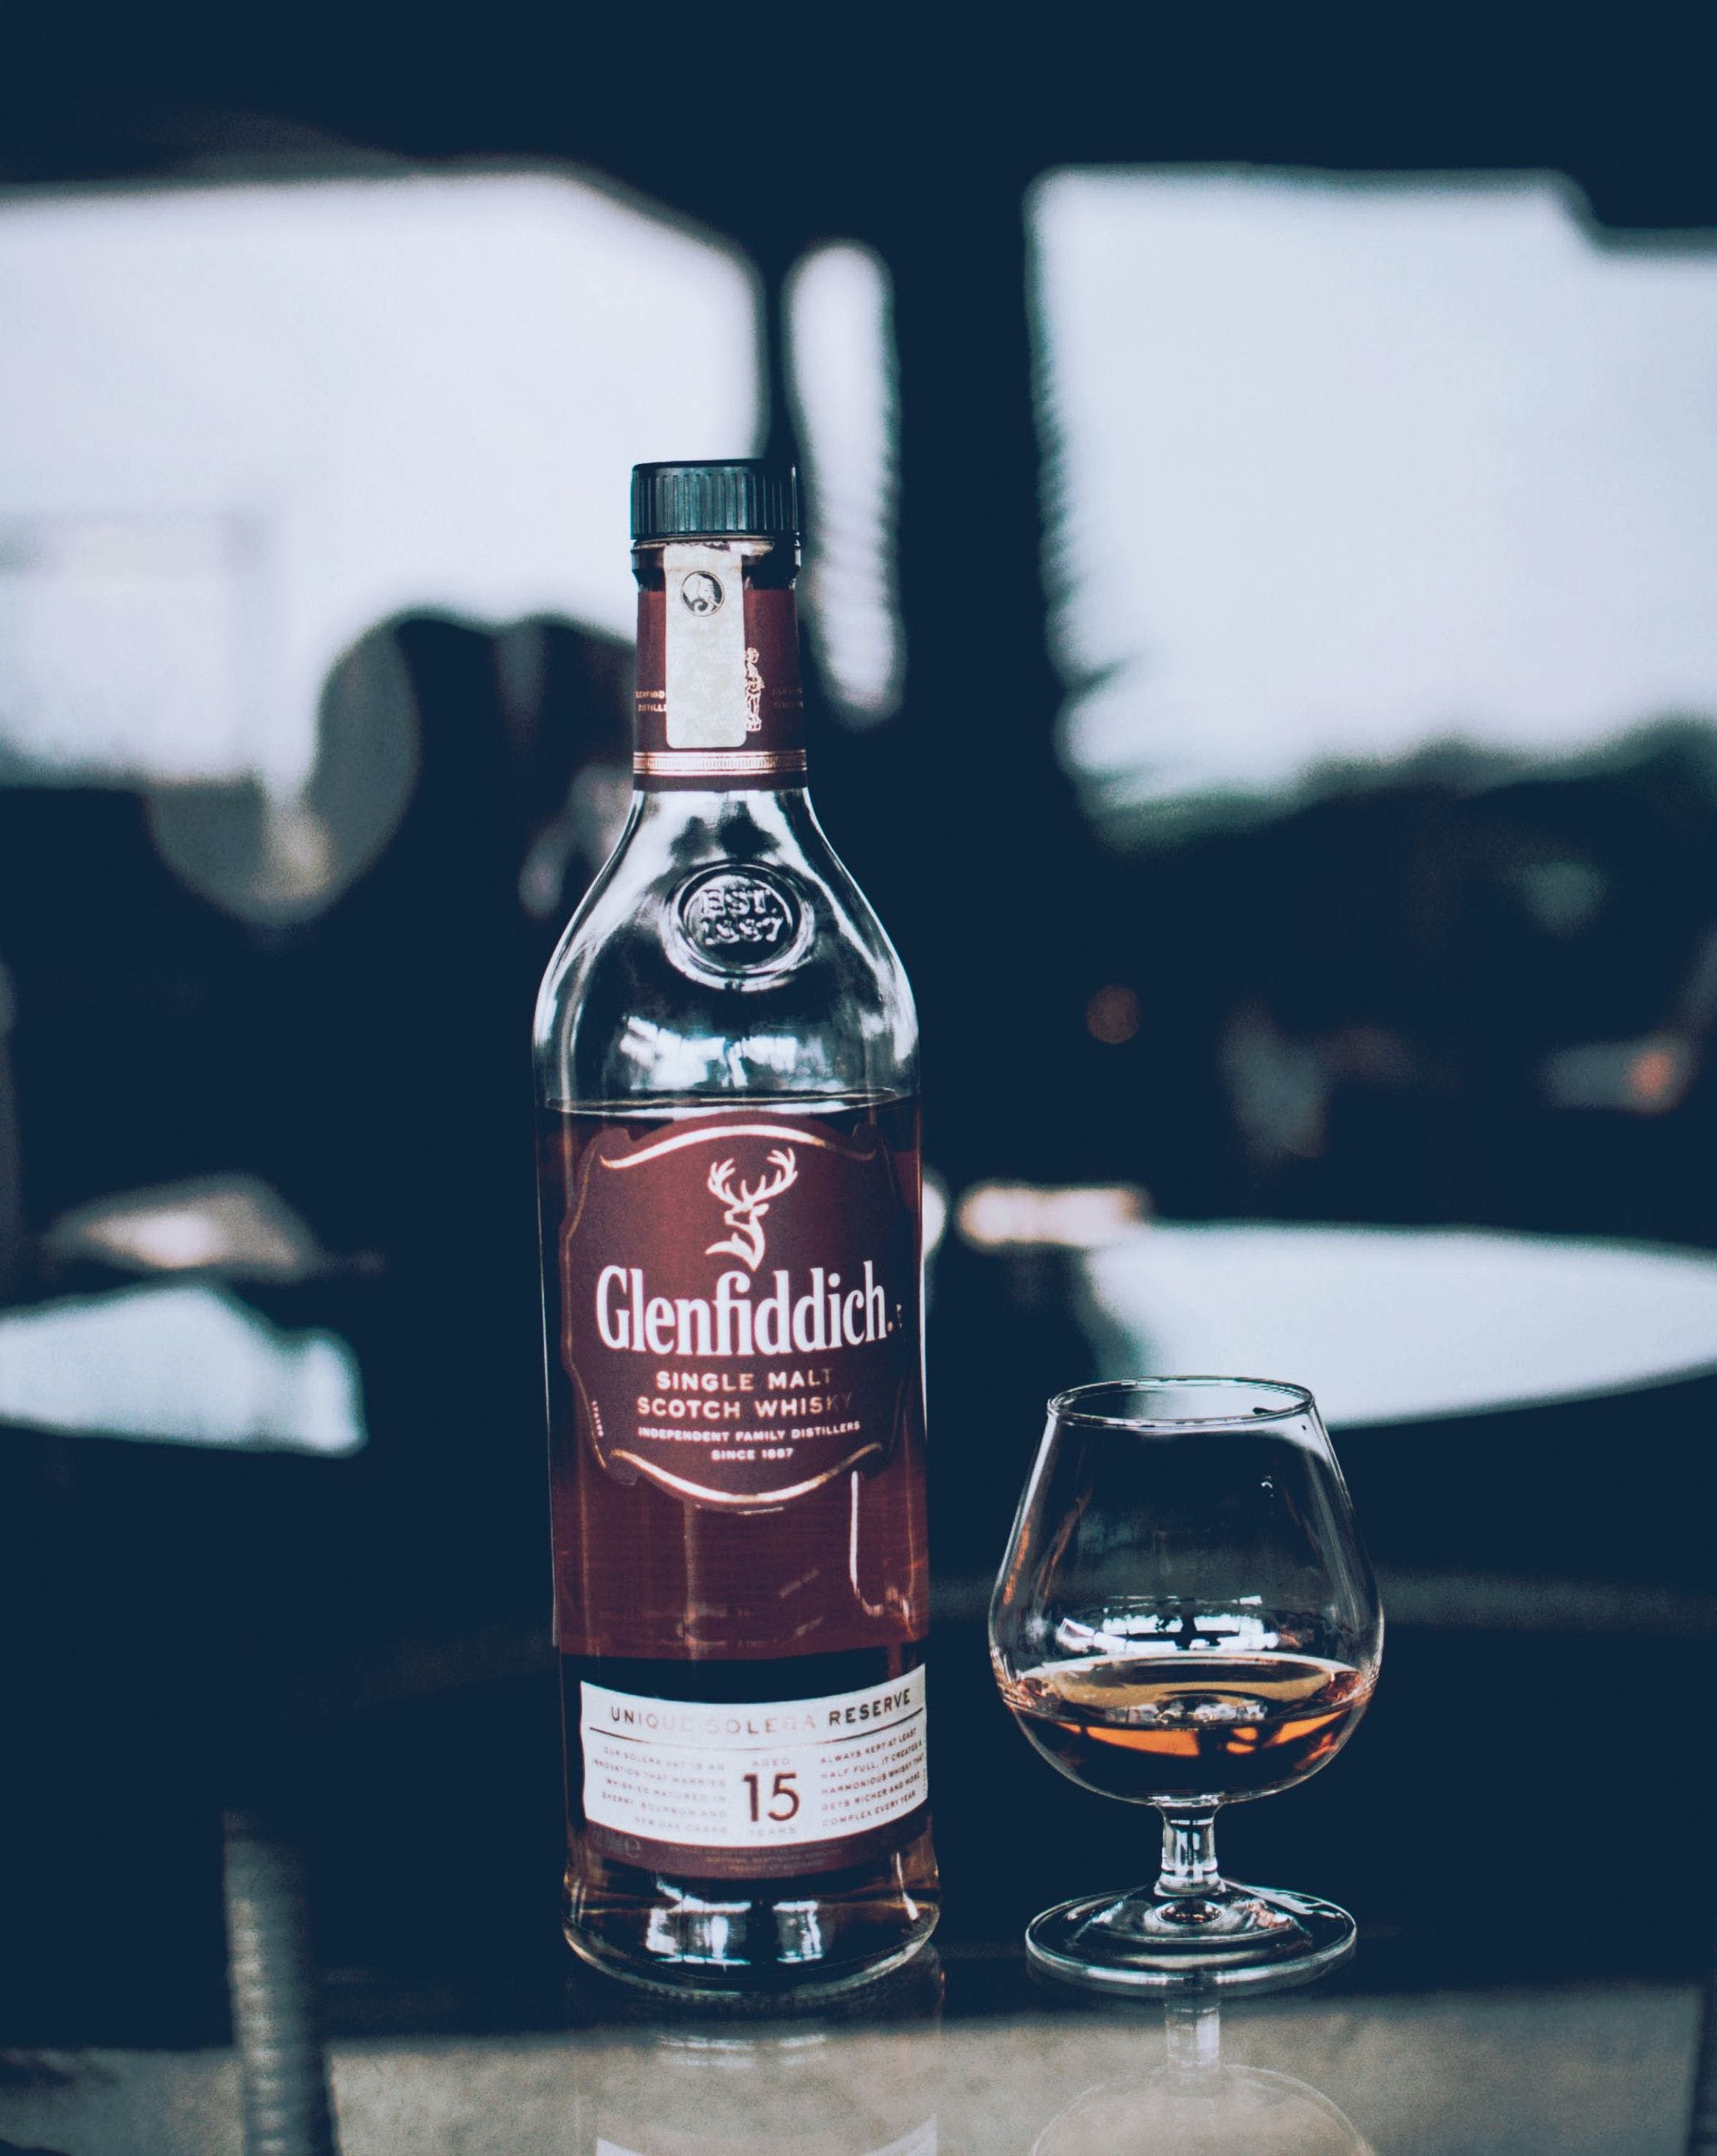 Glenfiddich Bottle Beside Wine Glass